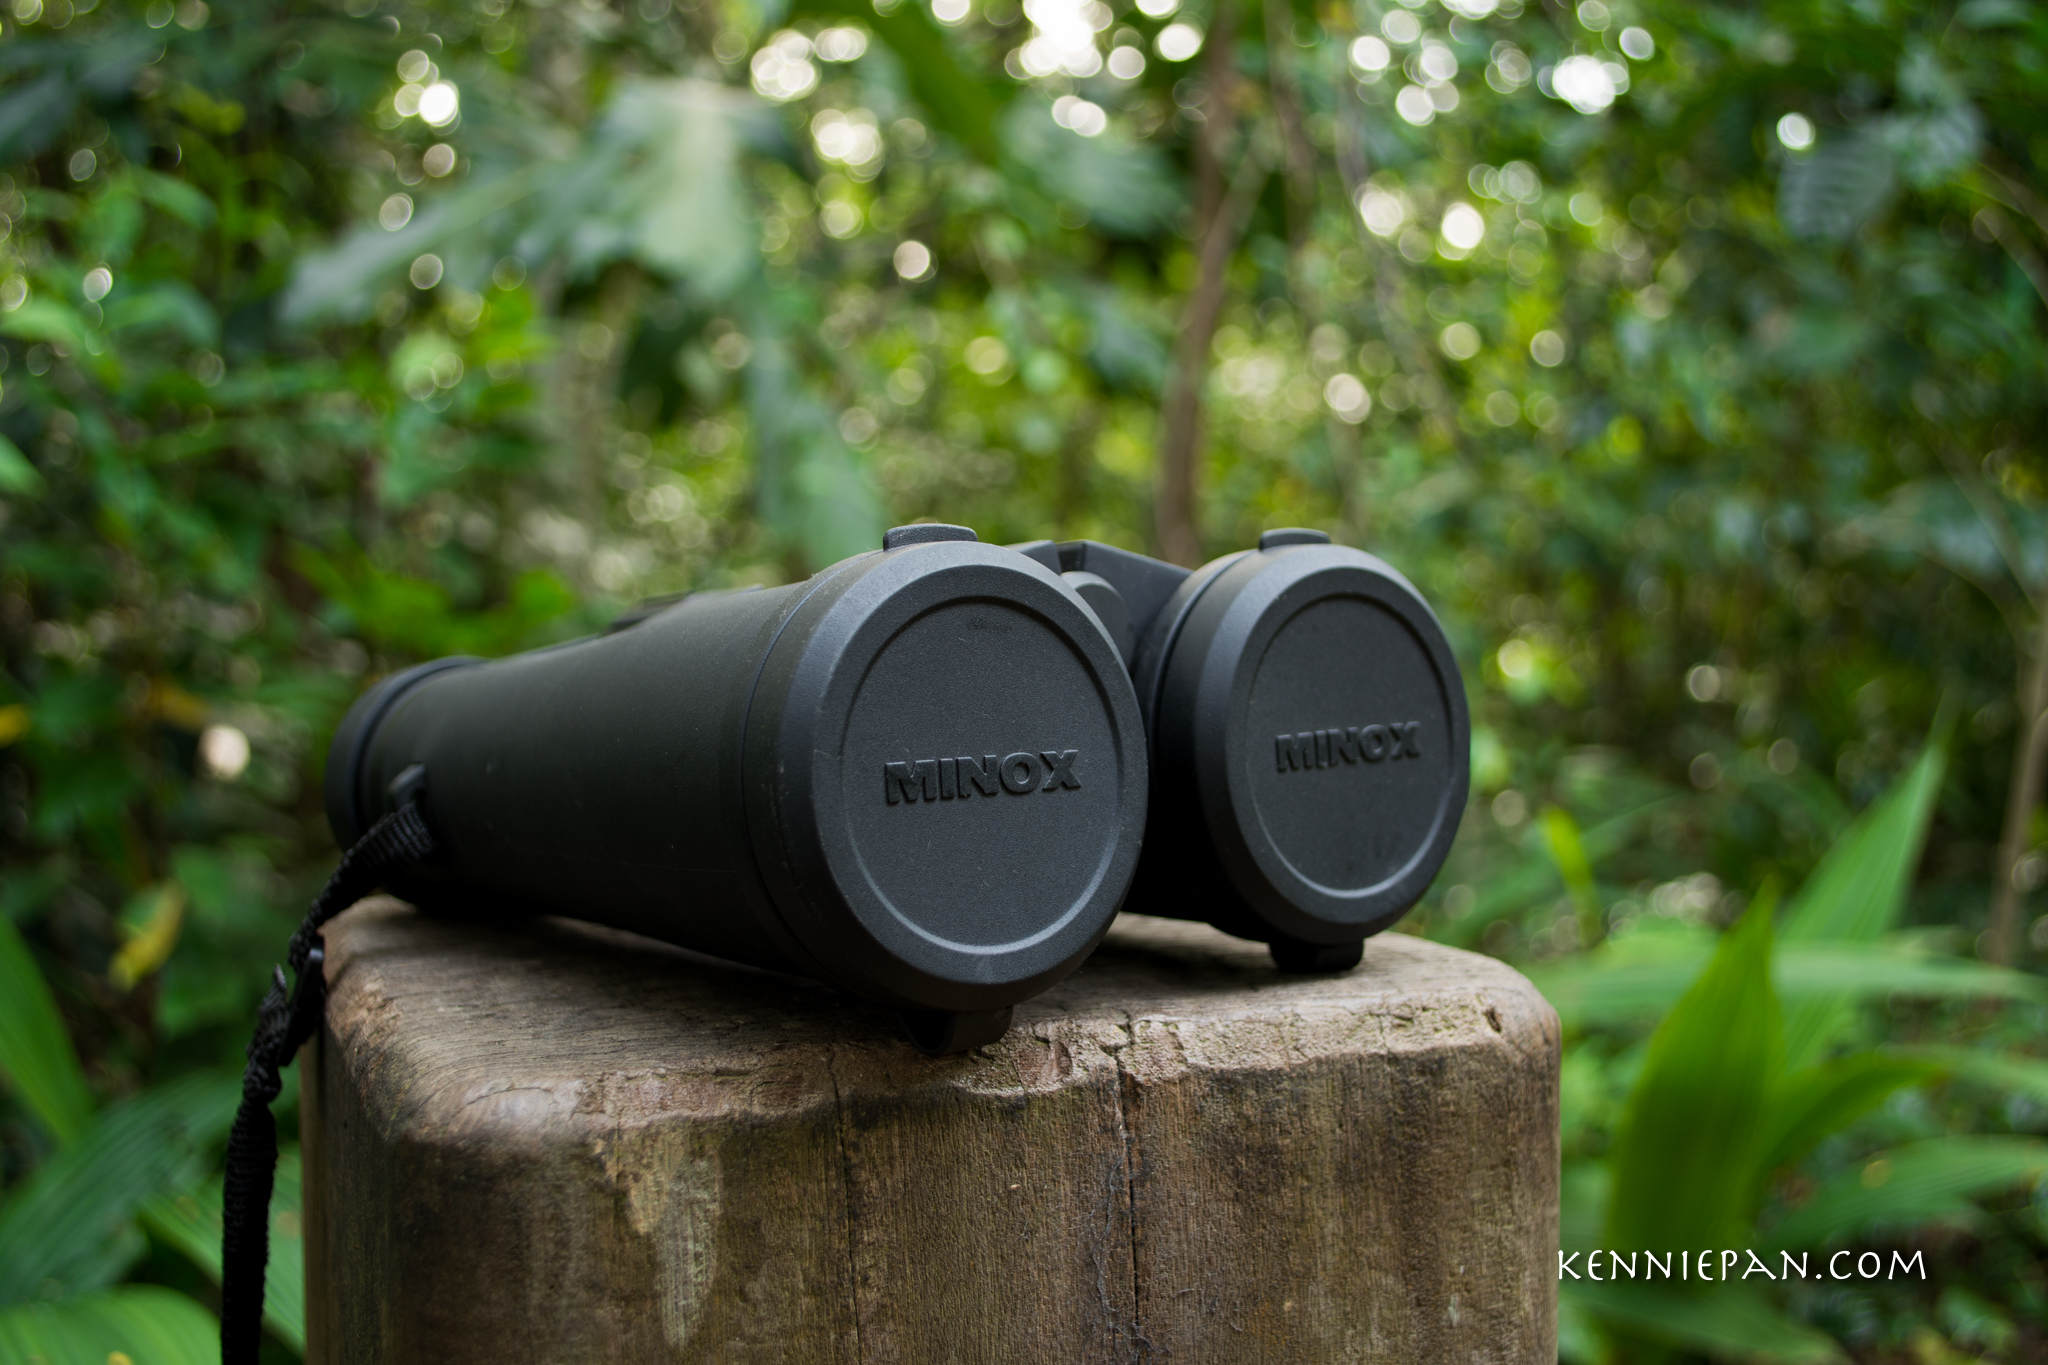 Minox Binoculars Review 10x52 Kennie Pan